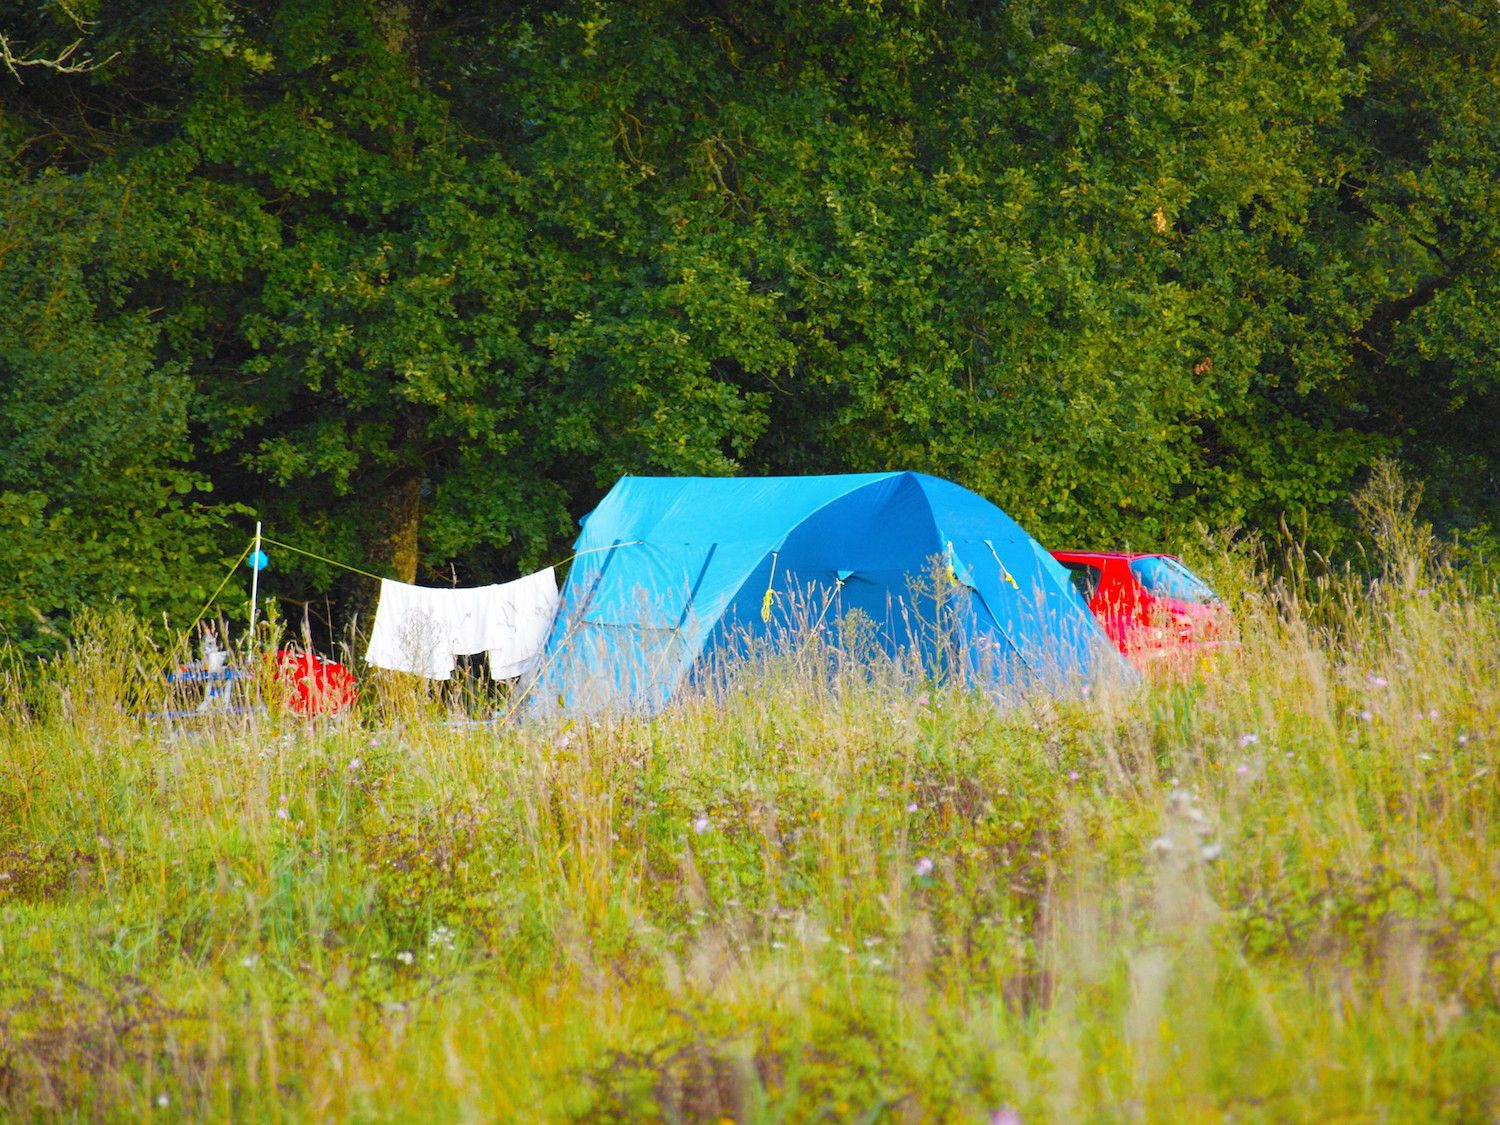 Adult-only campsites